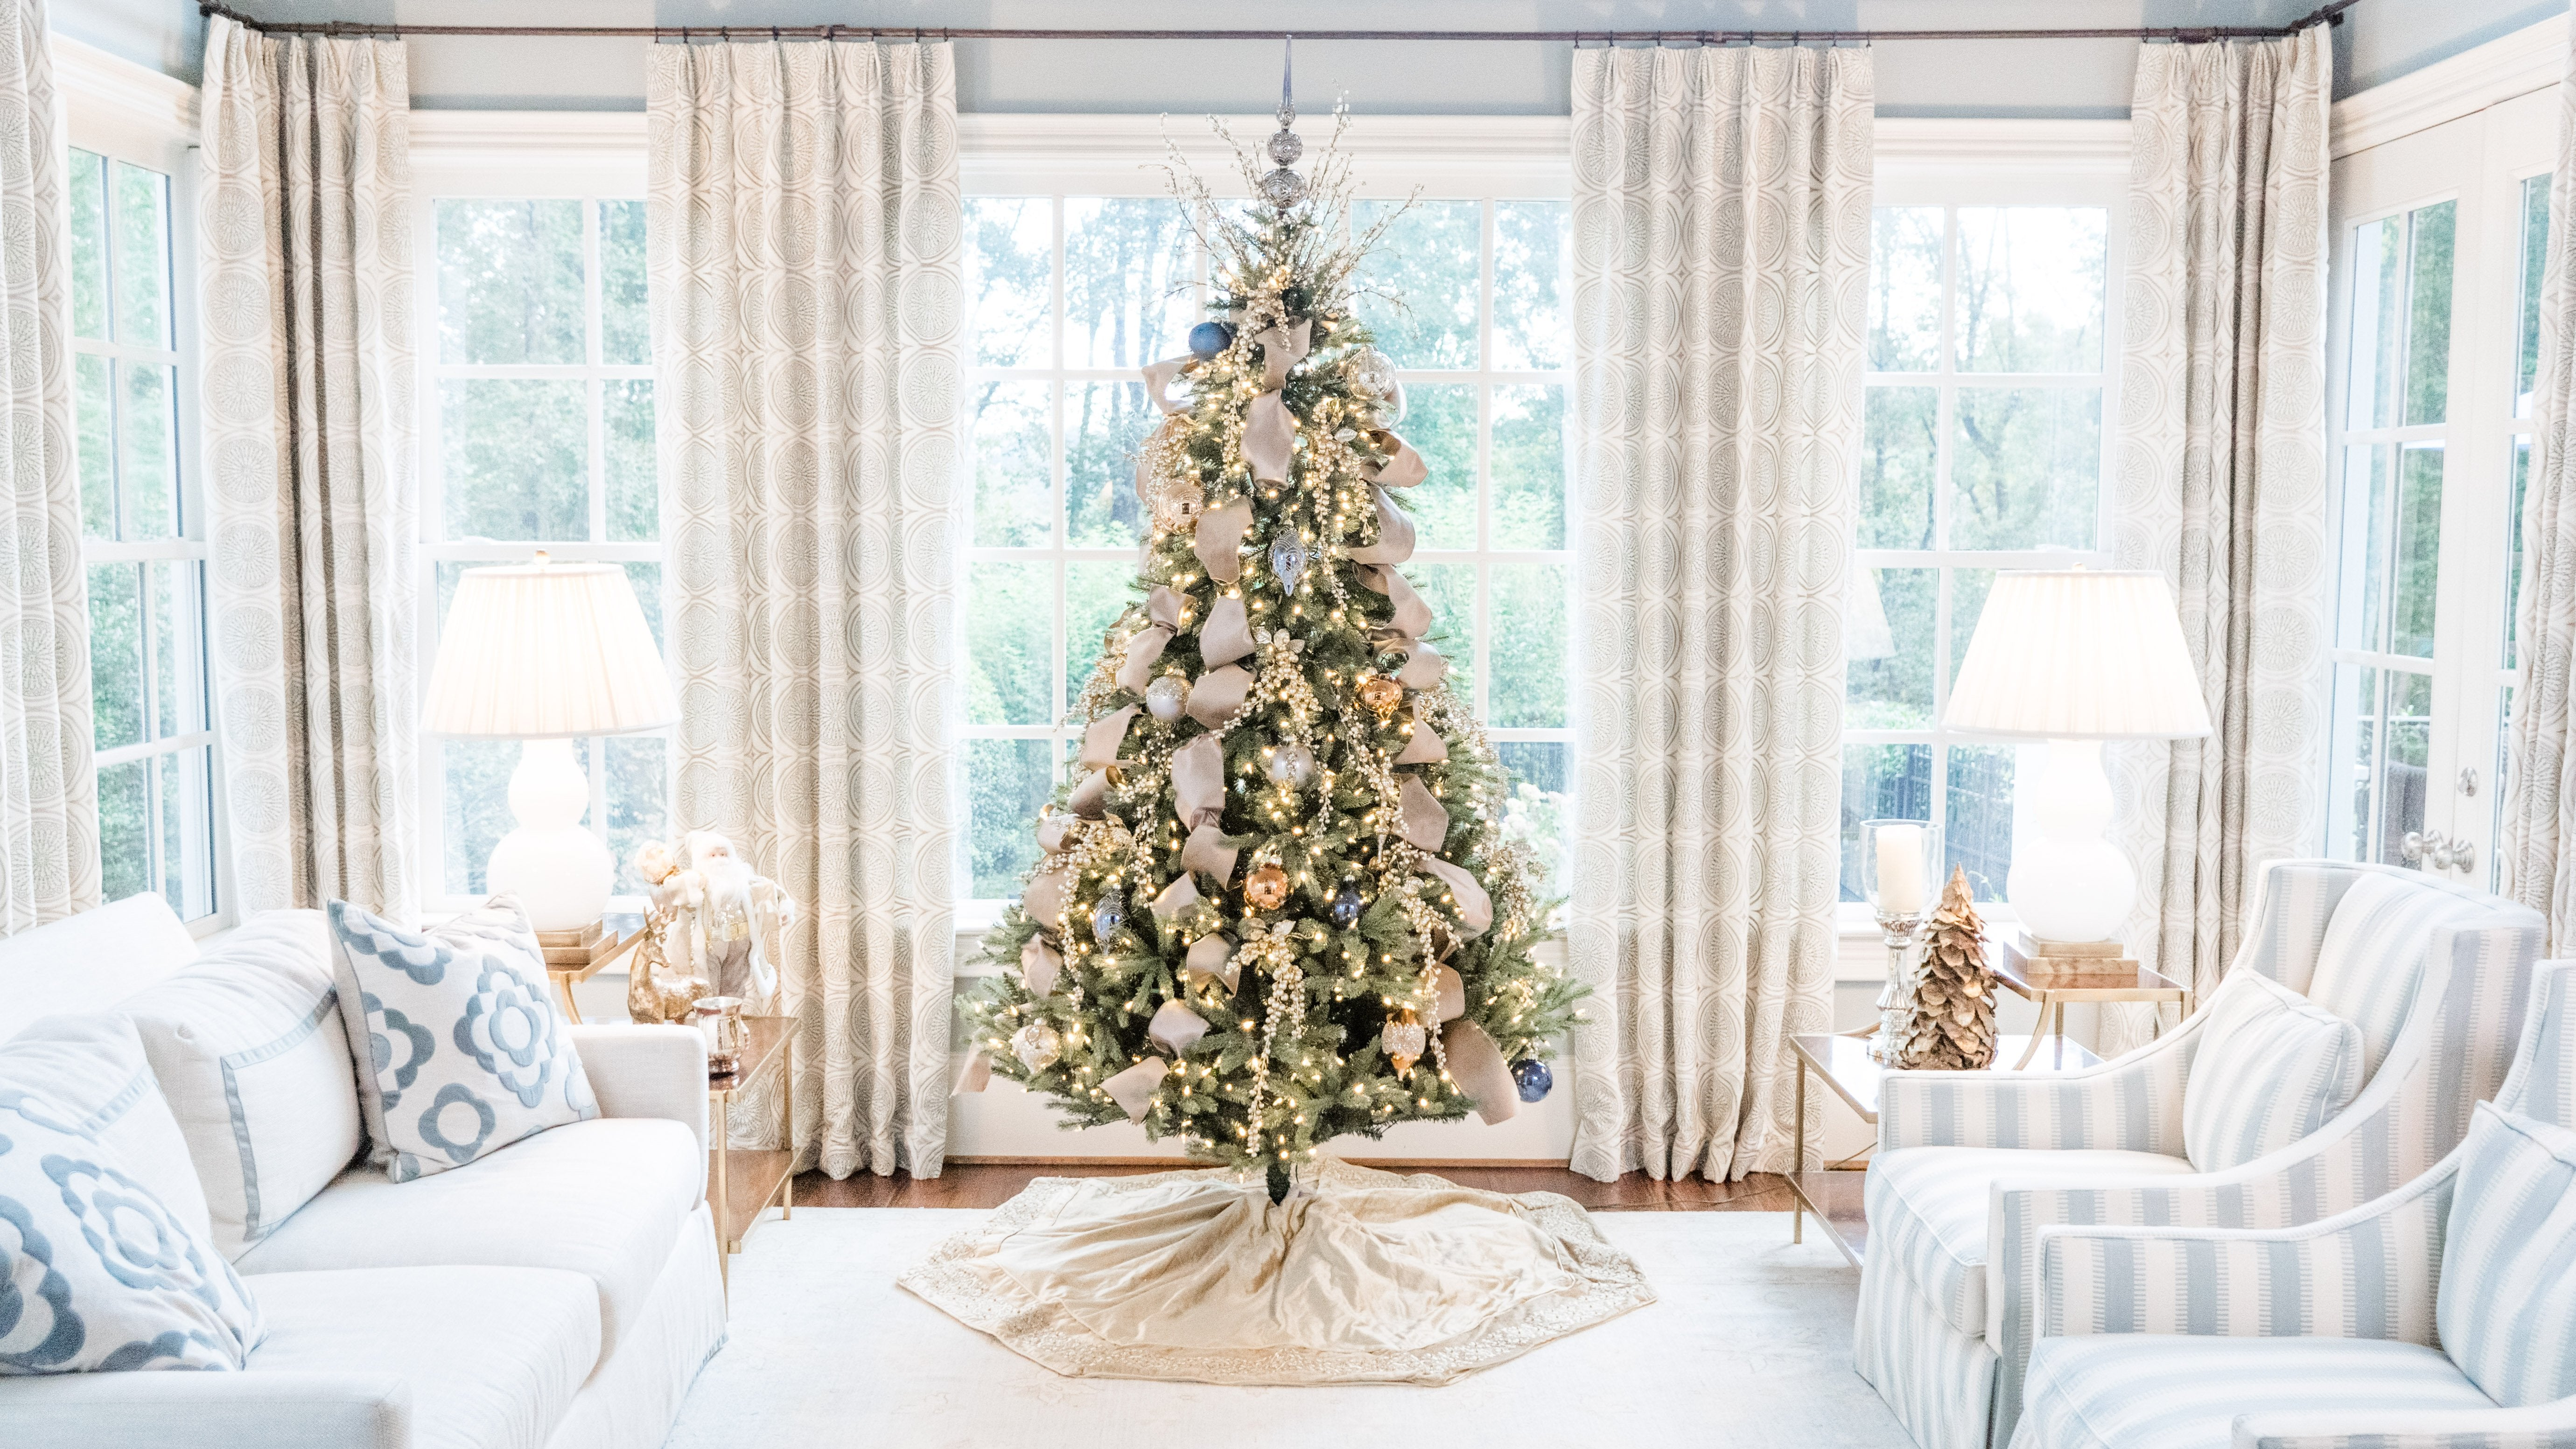 king of christmas highest quality artificial christmas trees king of christmas